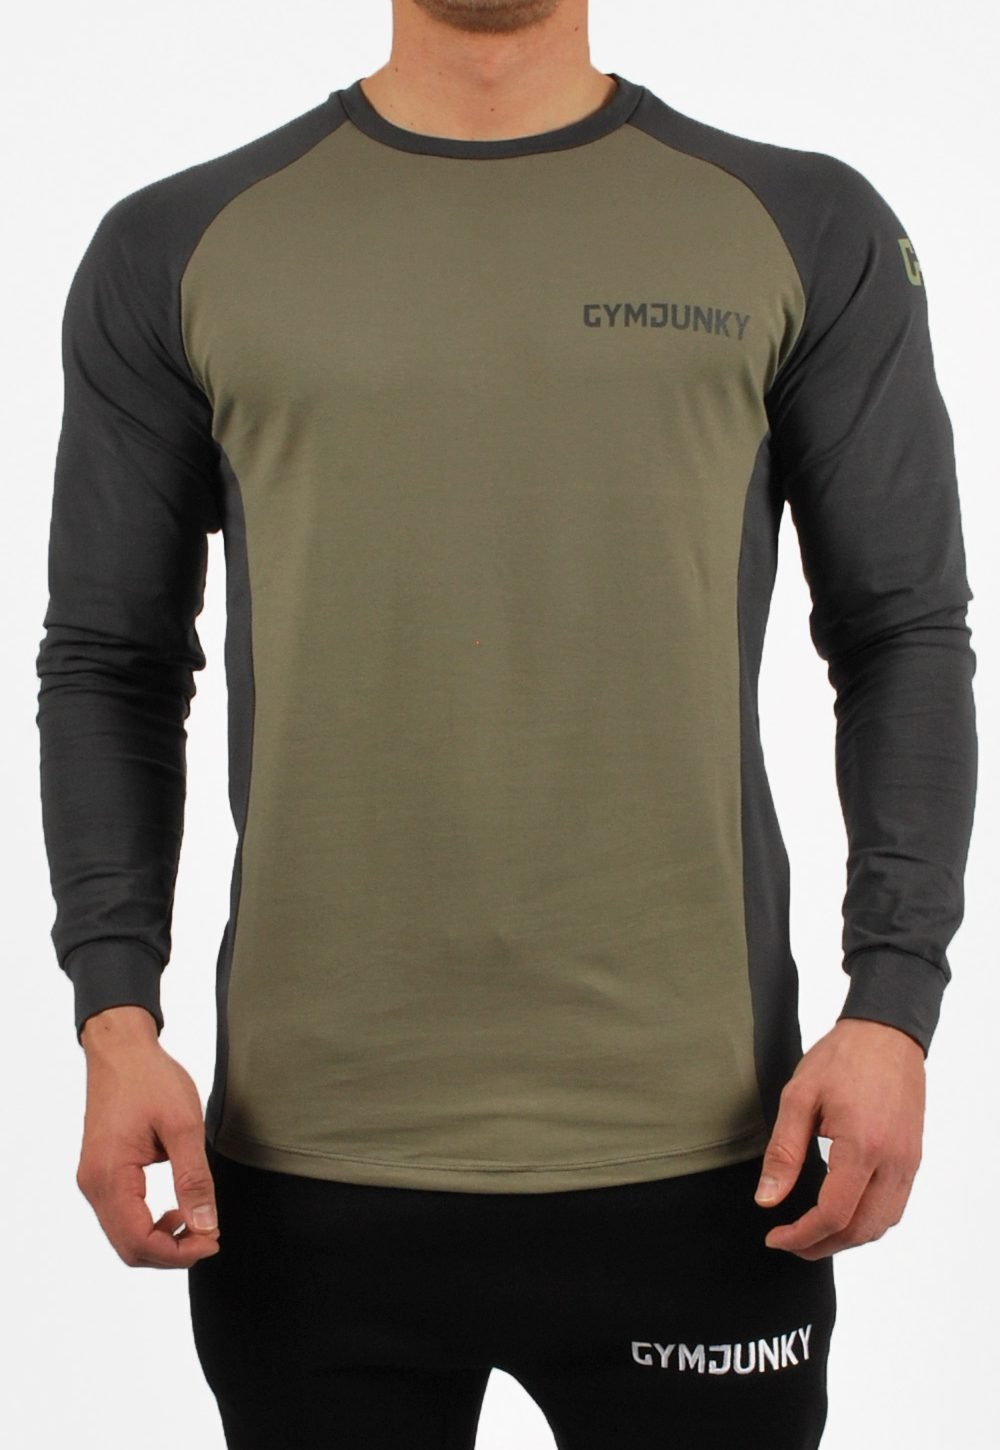 Gymjunky Dual Fitted T-shirt à manches longues Pour fitness sport  musculation  Amazon.fr  Sports et Loisirs b791cb462ca5